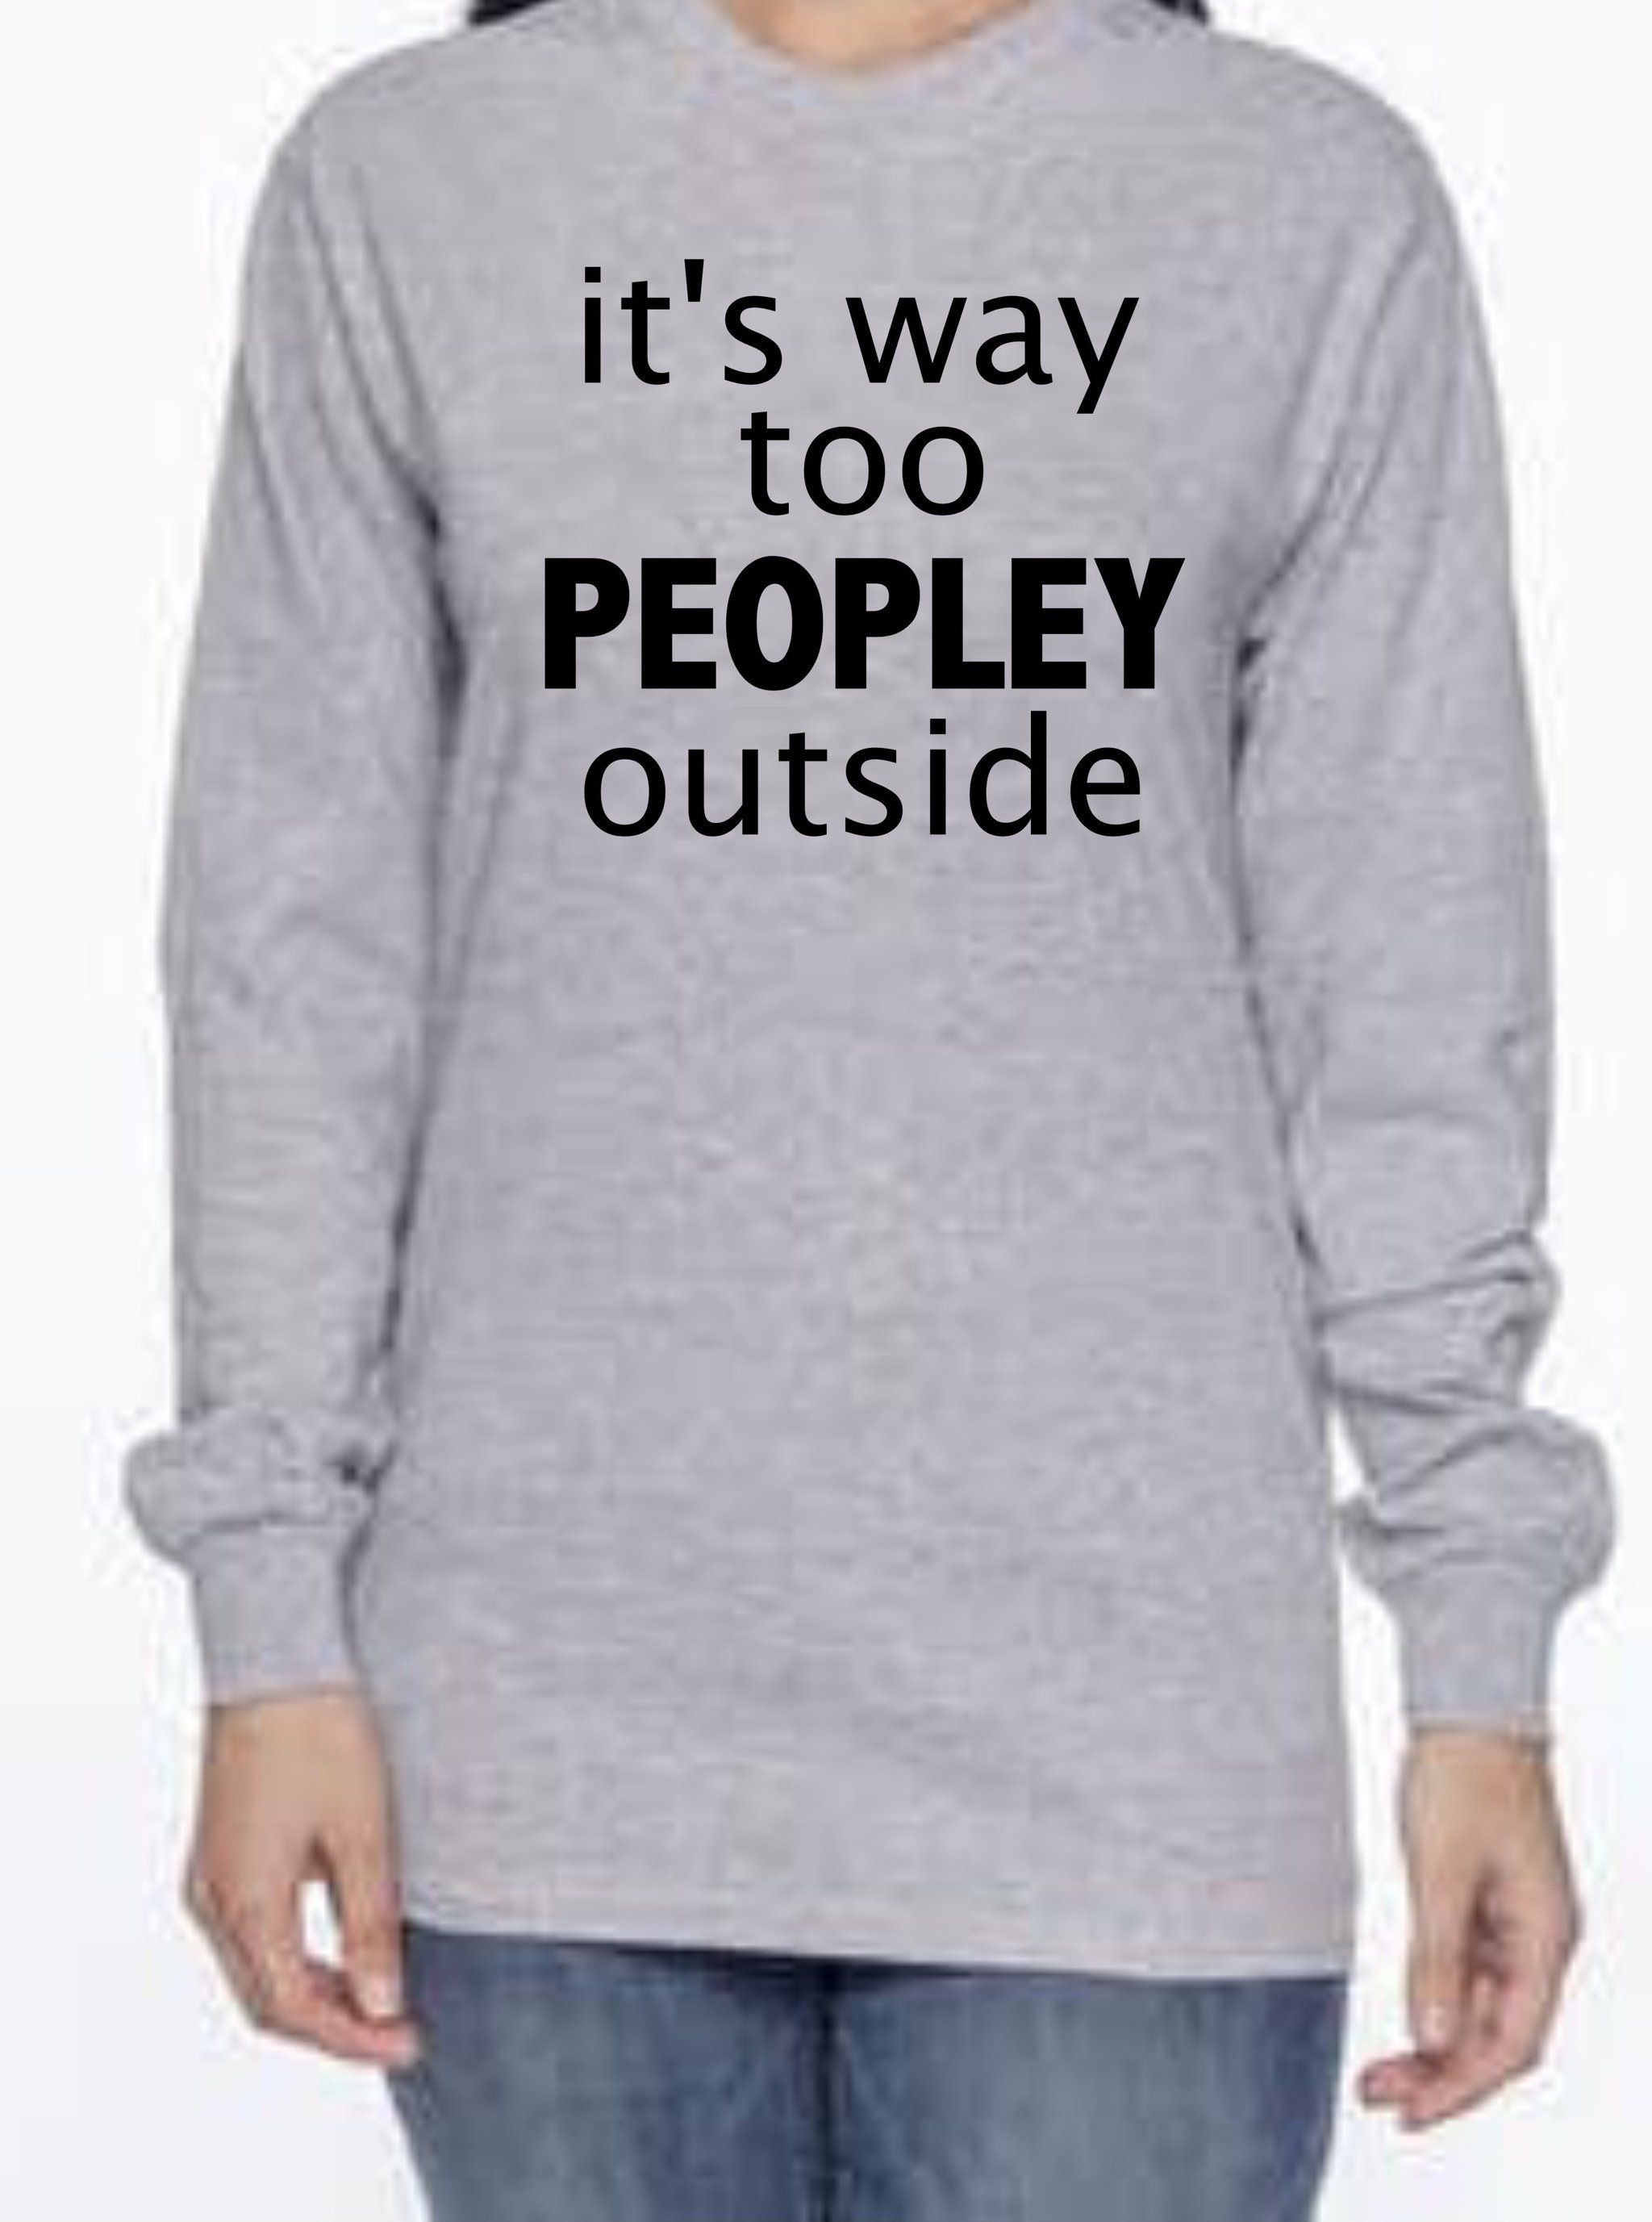 fee8ed358 It's Way Too People-y Outside tee | She Laughs Without Fear of the ...